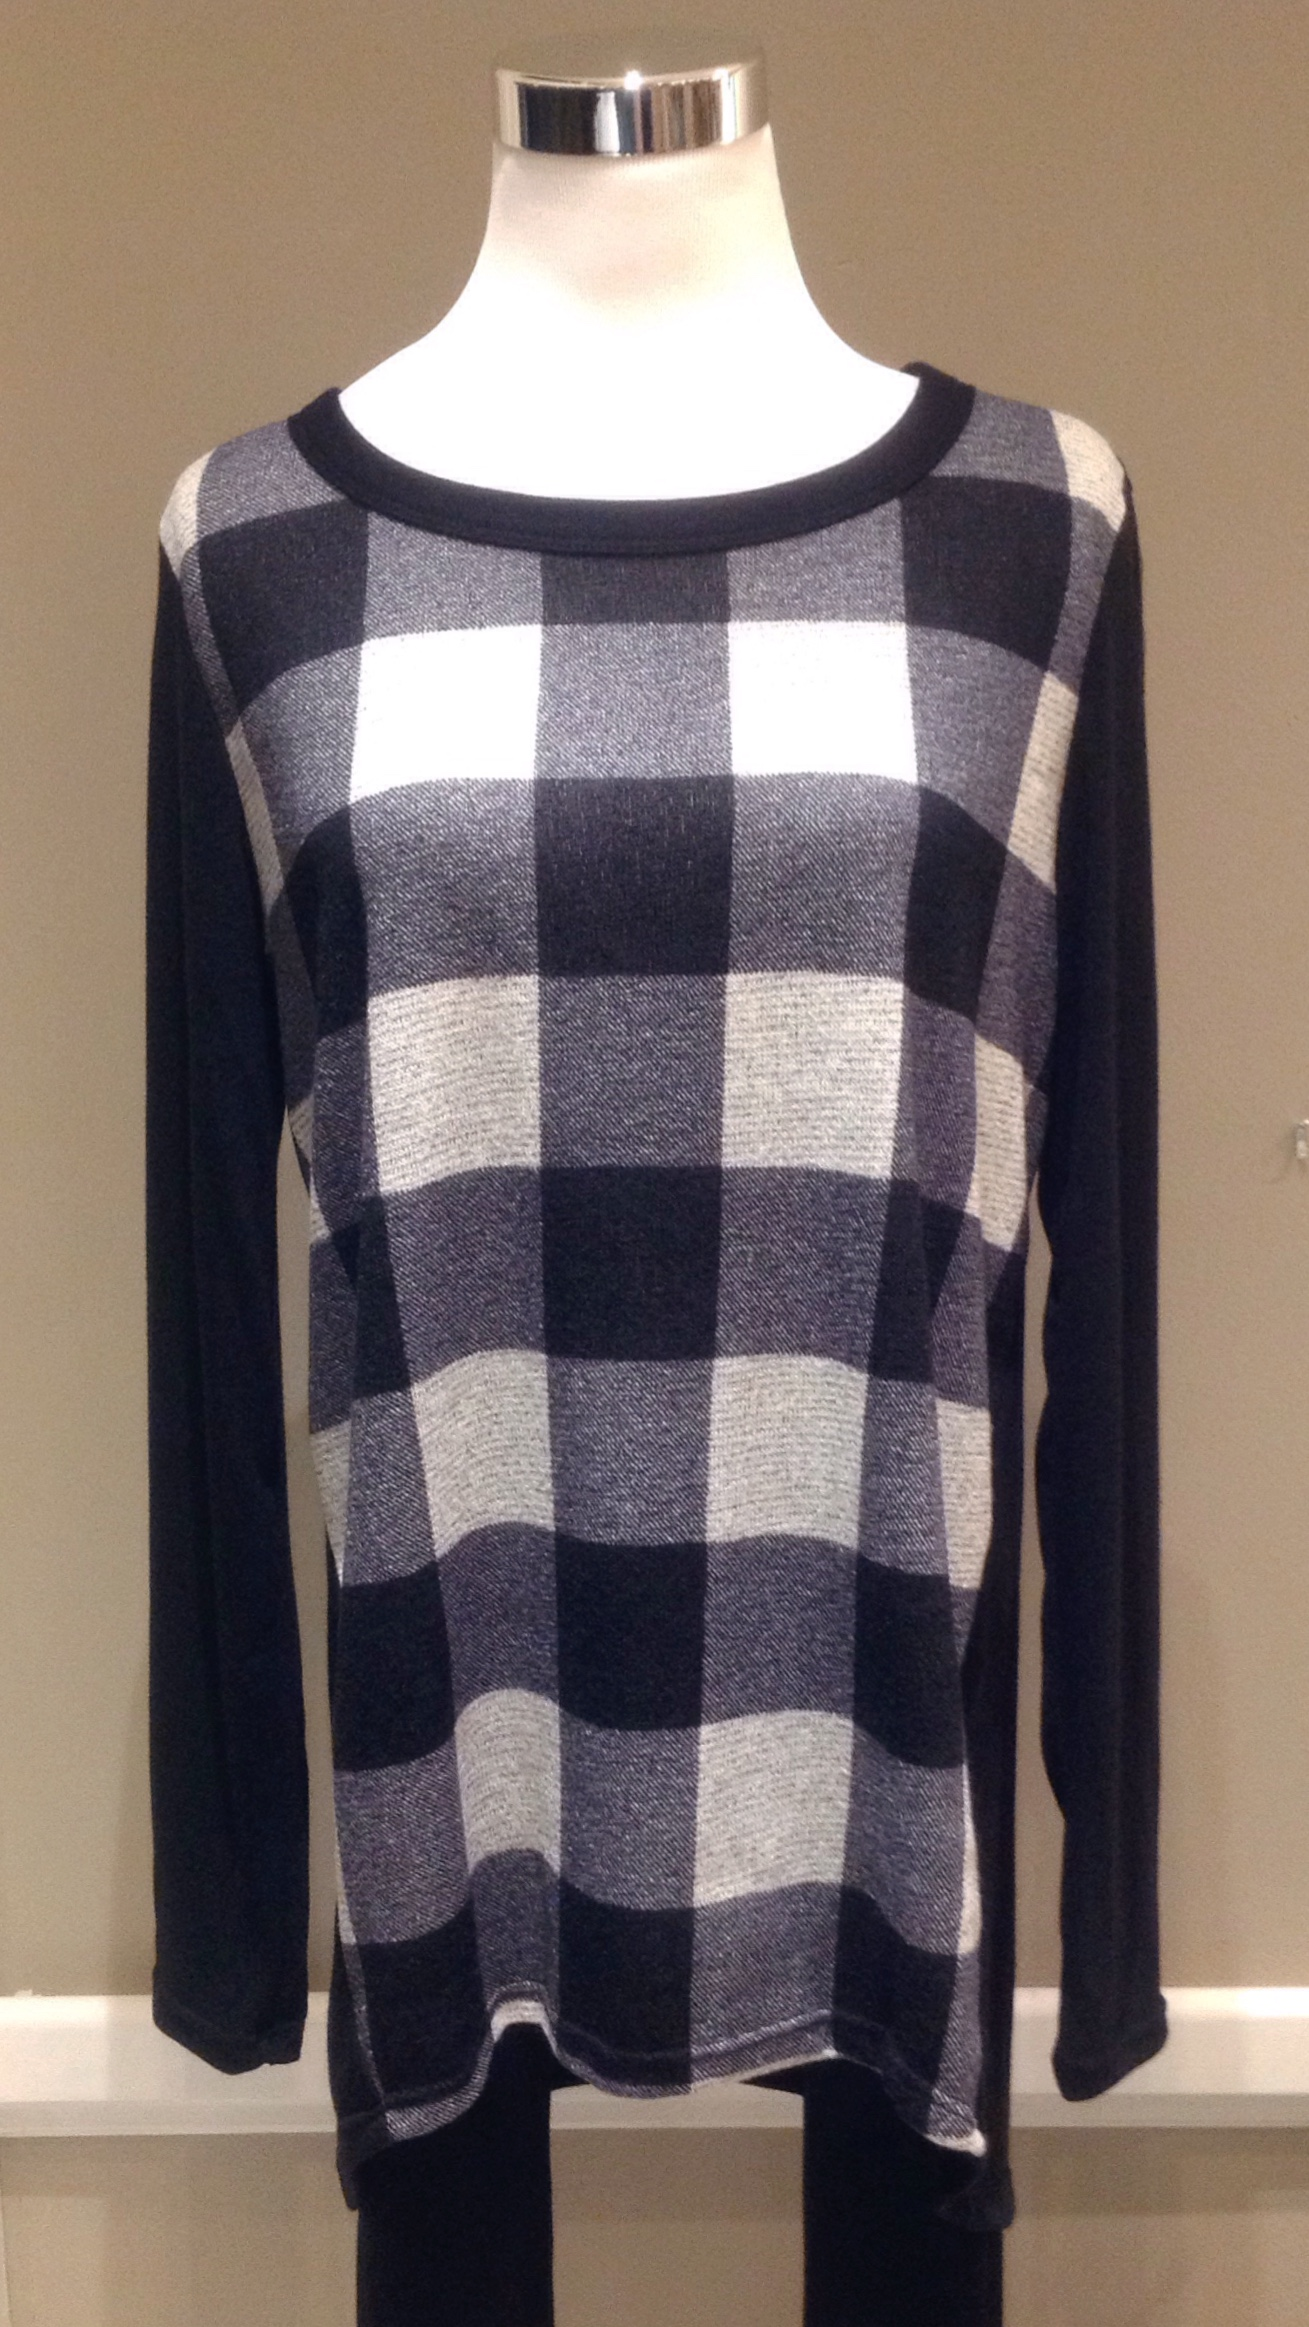 Buffalo check top with high-low hem, and solid black sleeves and back panel, $32